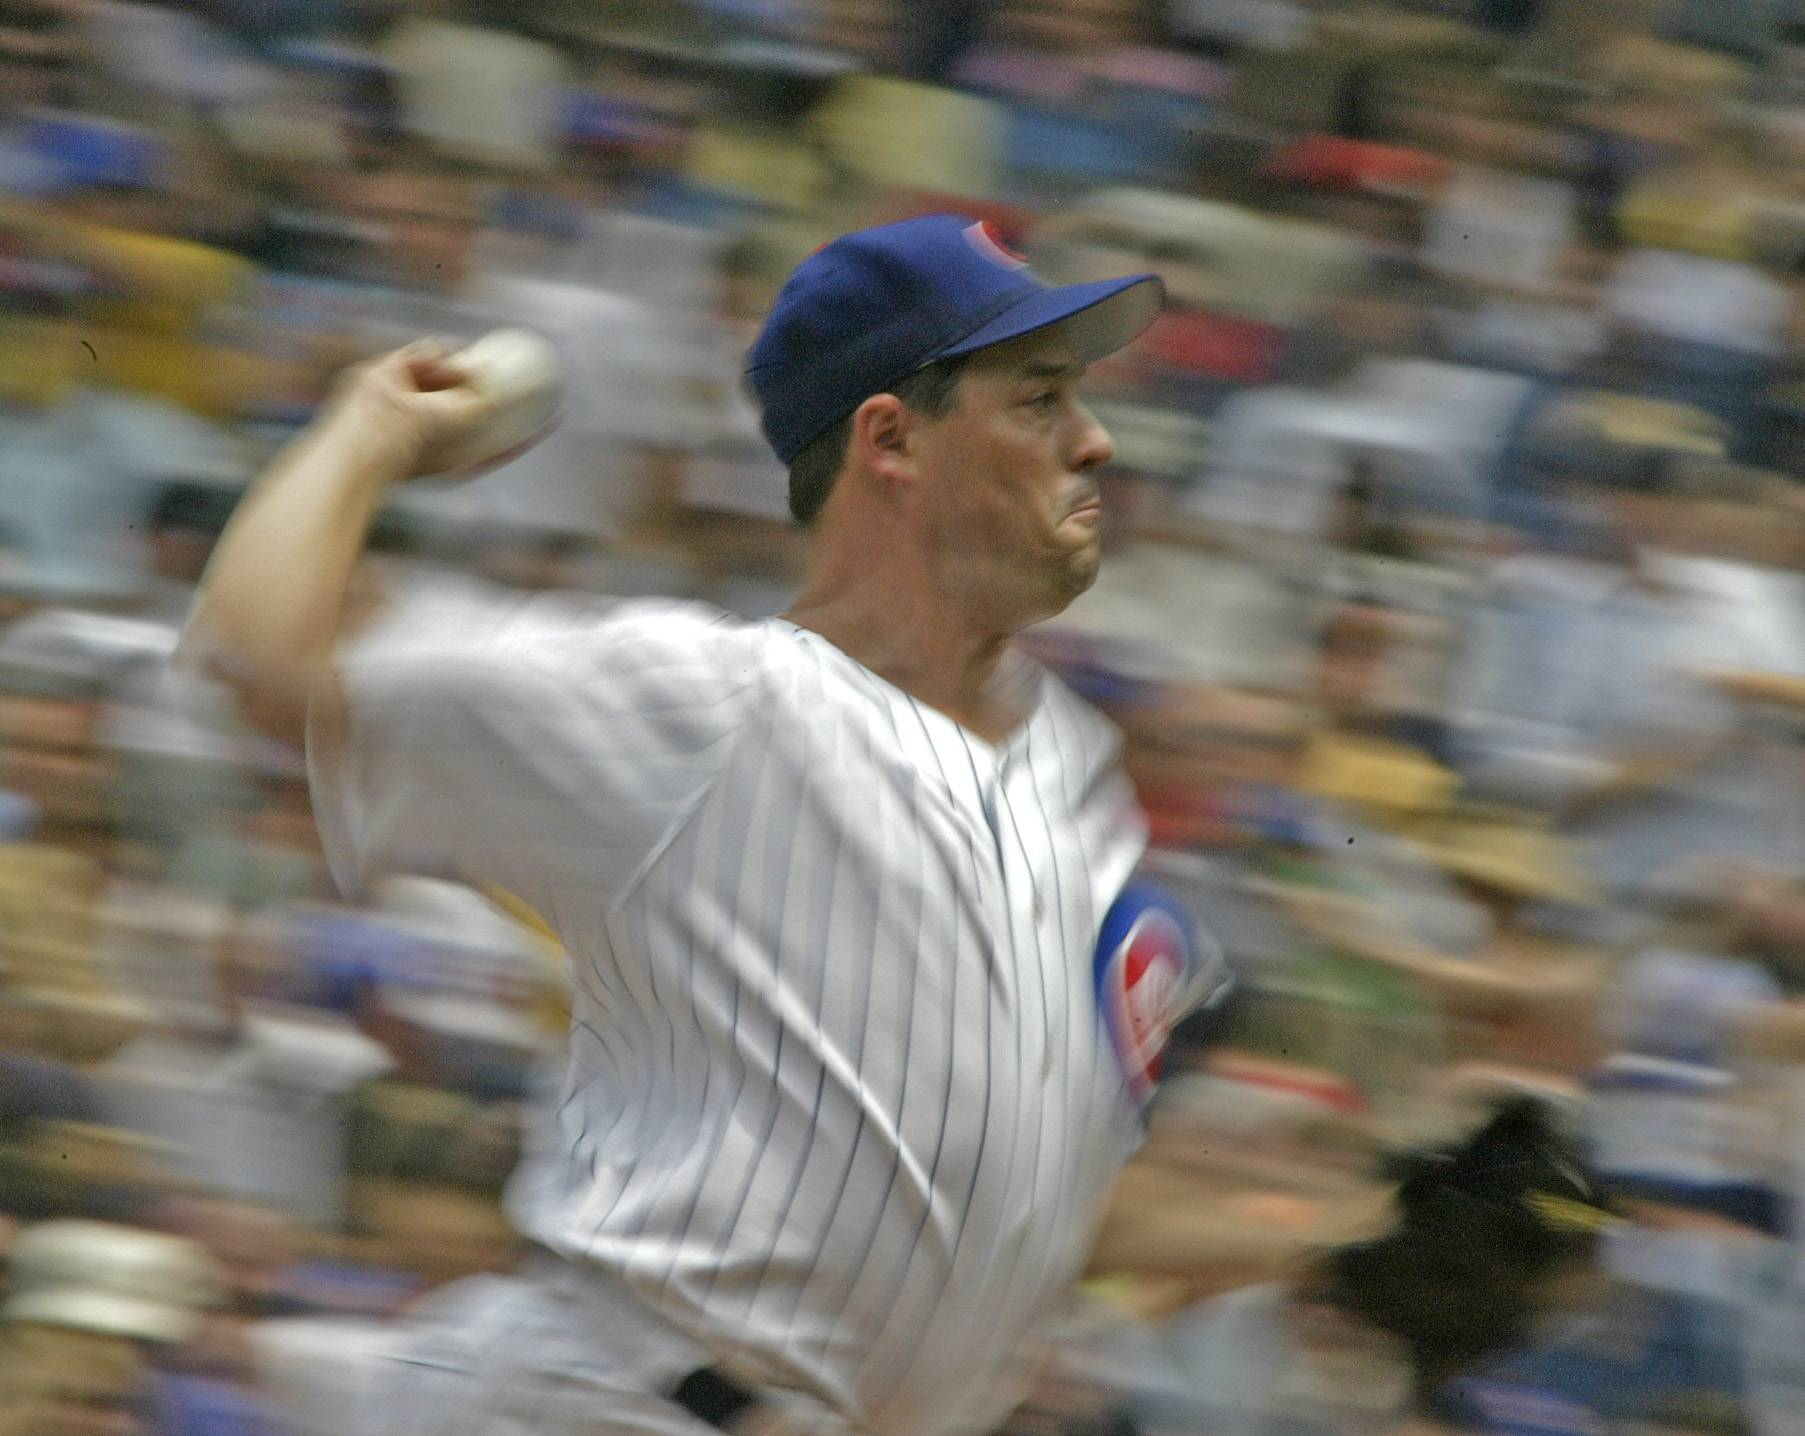 Greg Maddux threw over 5,000 innings in the major leagues, winning 355 games.